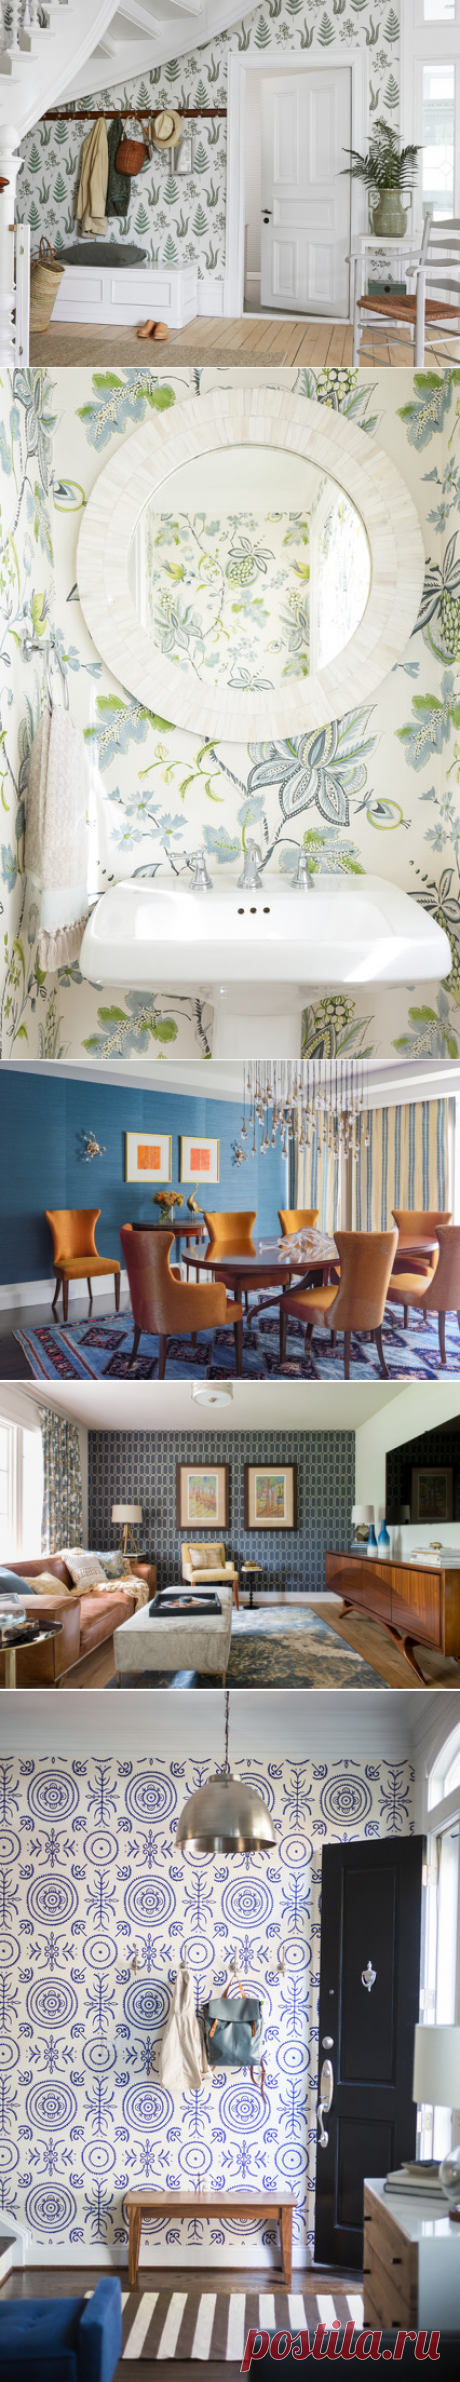 Great Home Project: How to Add Wallpaper to a Room